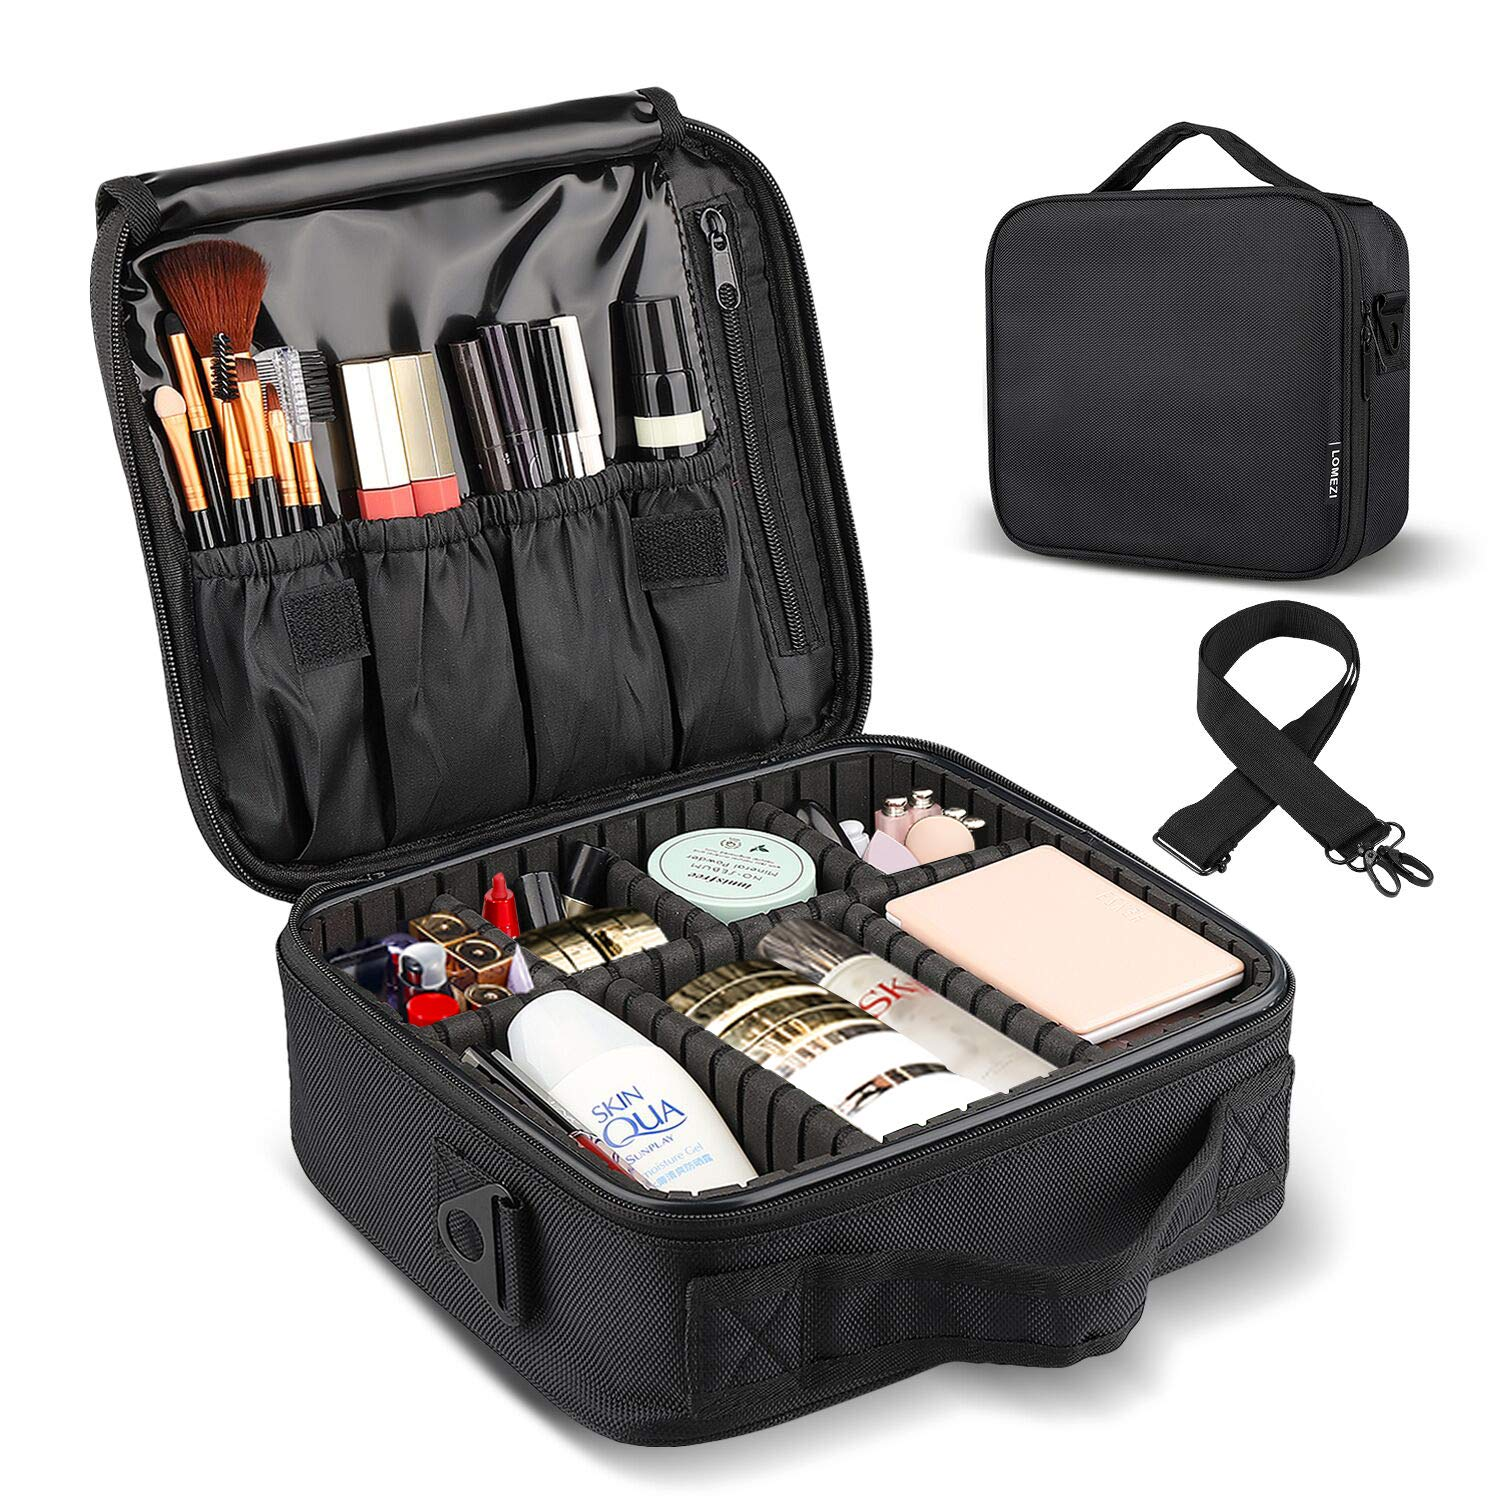 LOMEZI Makeup Train Case Professional Makeup Bag Travel Cosmetic Bag for Women Organizer Portable Storage Bag with Shoulder Strap Adjustable Dividers for Makeup Brushes Toiletry Travel Accessories